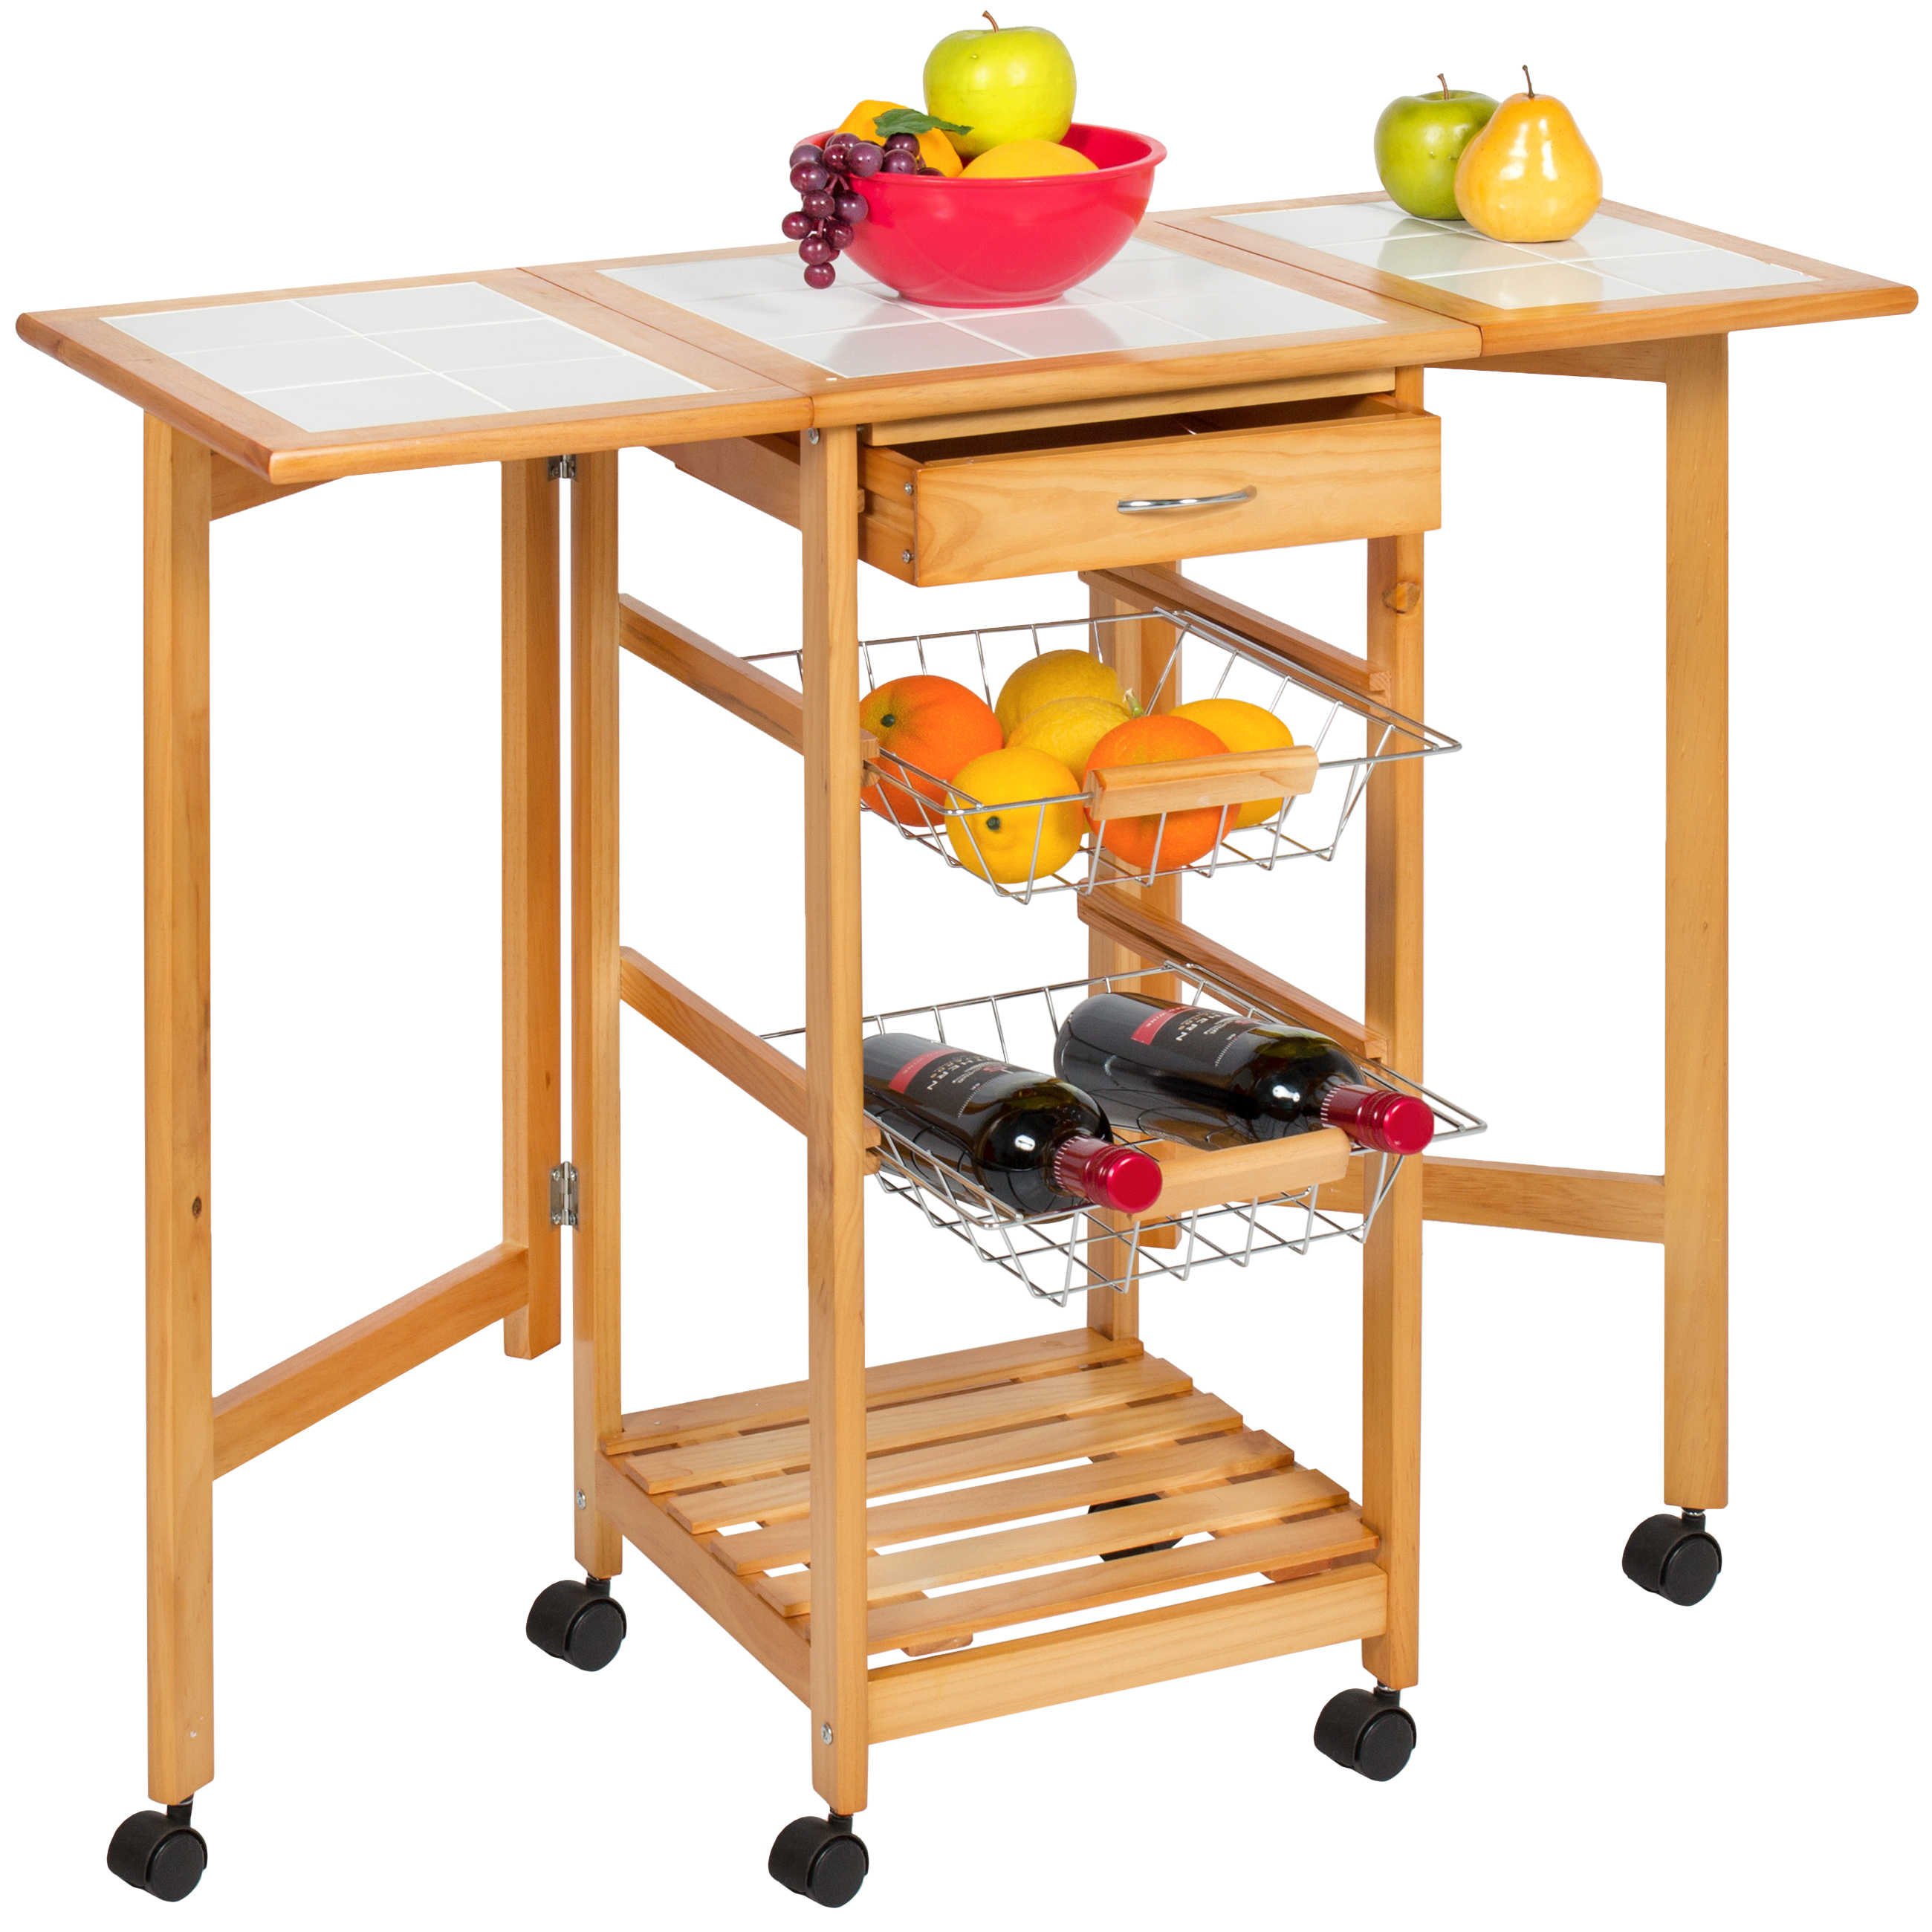 Portable Folding Tile Top Drop Leaf Kitchen Island Cart Table Rolling Trolley 816586027719 Ebay